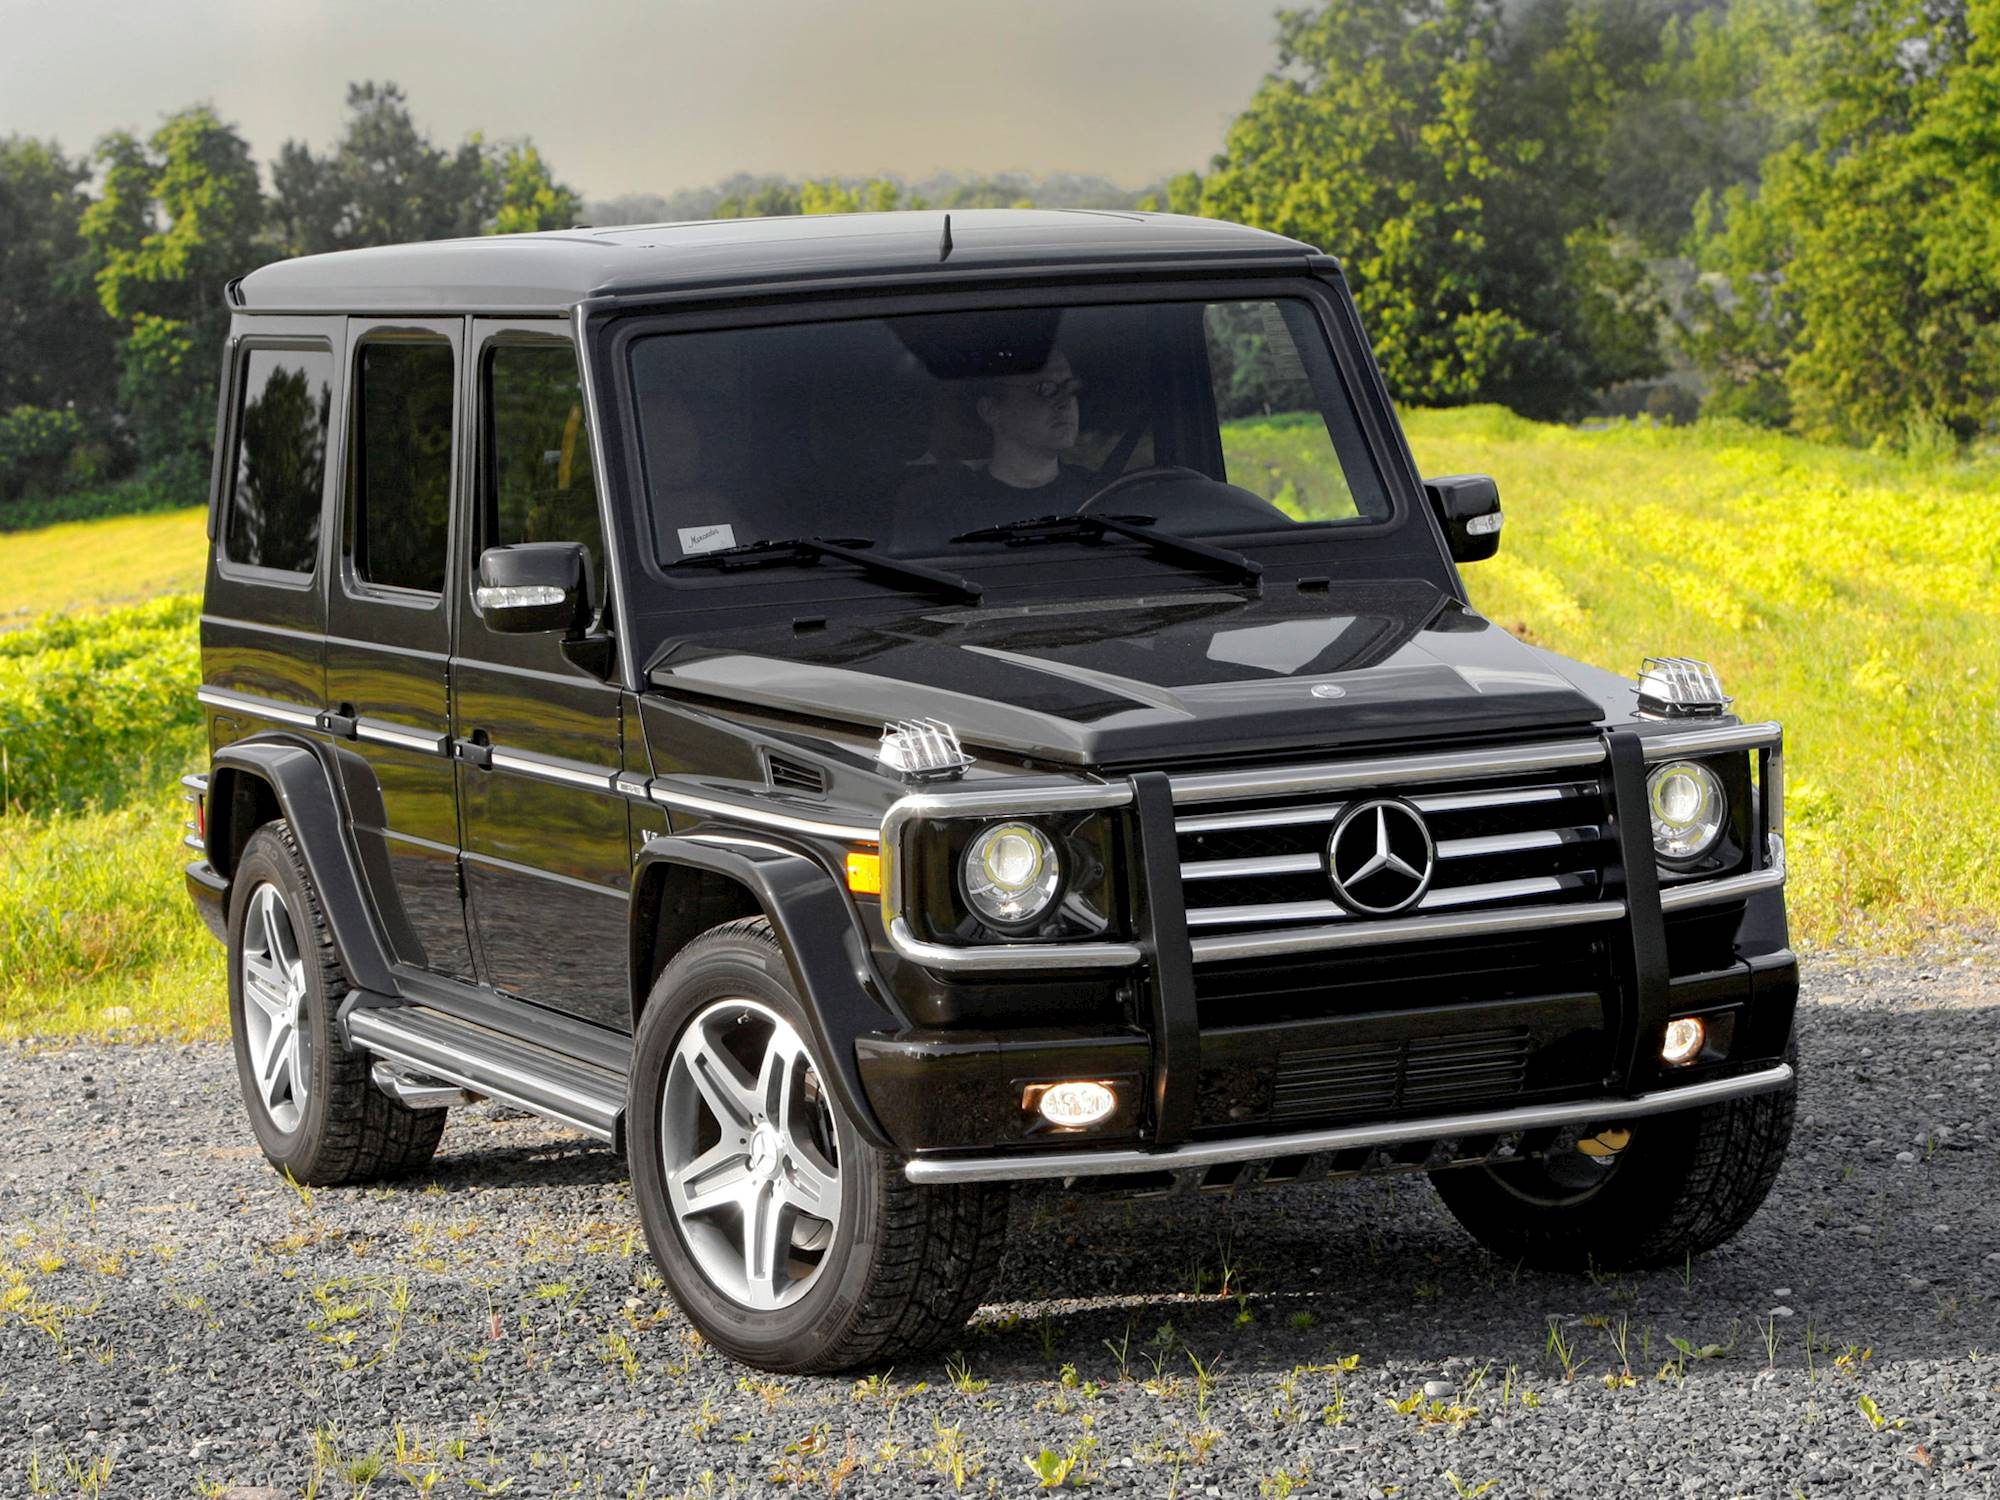 2010 Mercedes Benz G55 AMG Base 4dr All wheel Drive 4MATIC 5 spd